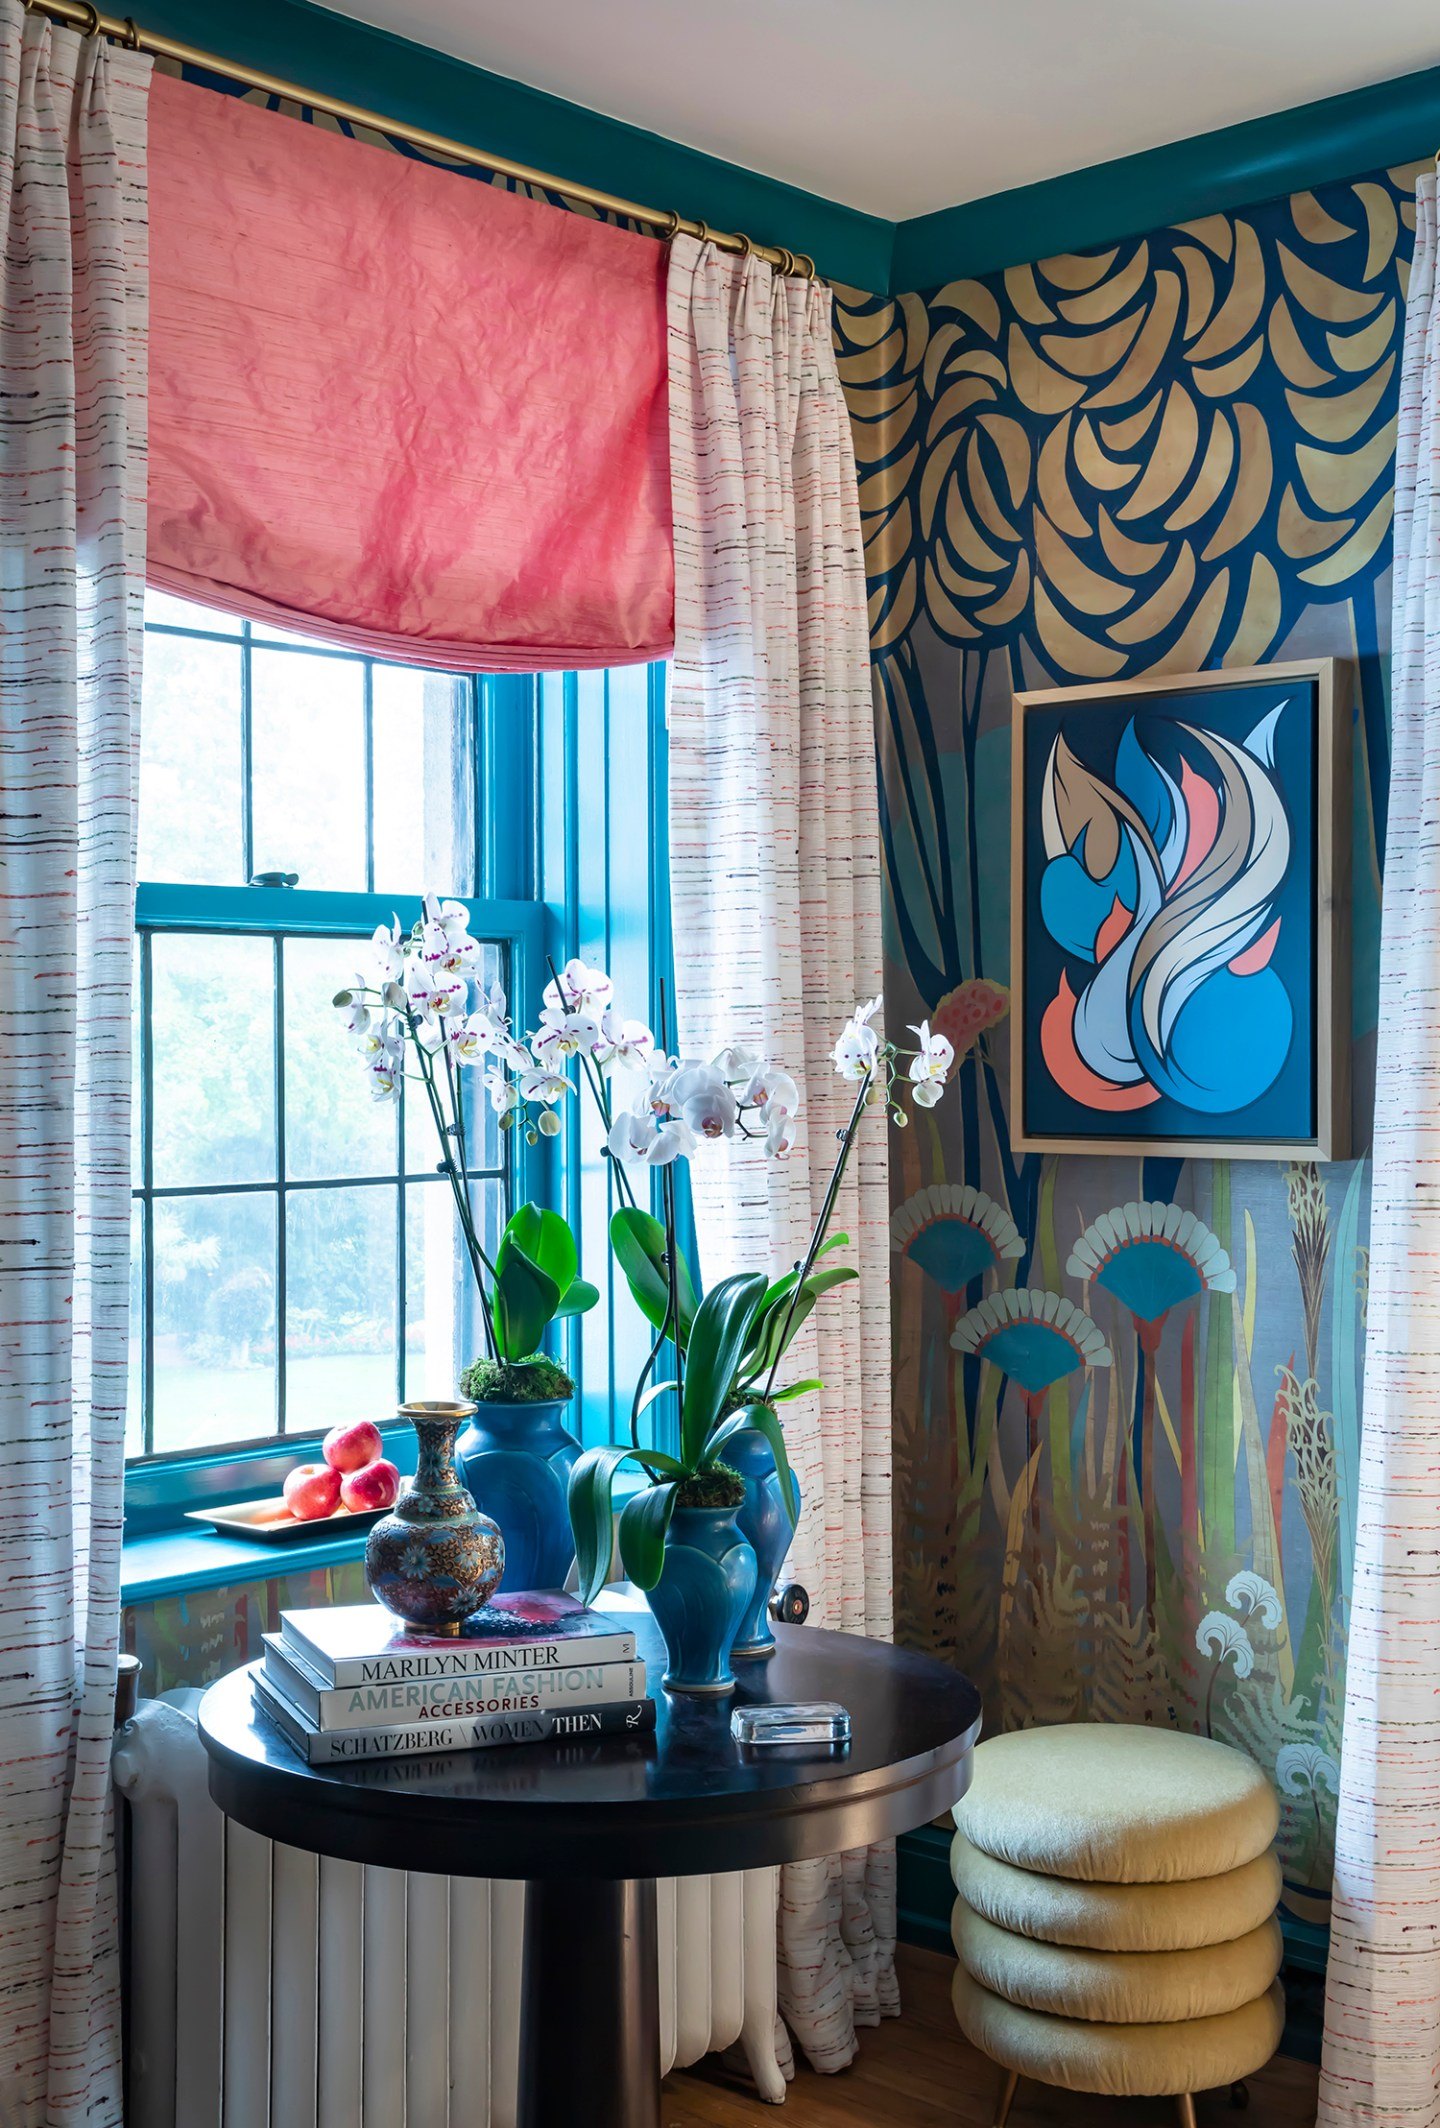 Courtney-McLeod-RMLID-JL-Showhouse_27 Tips for Adding Color and Pattern to a Roomfrom a Louisiana Native